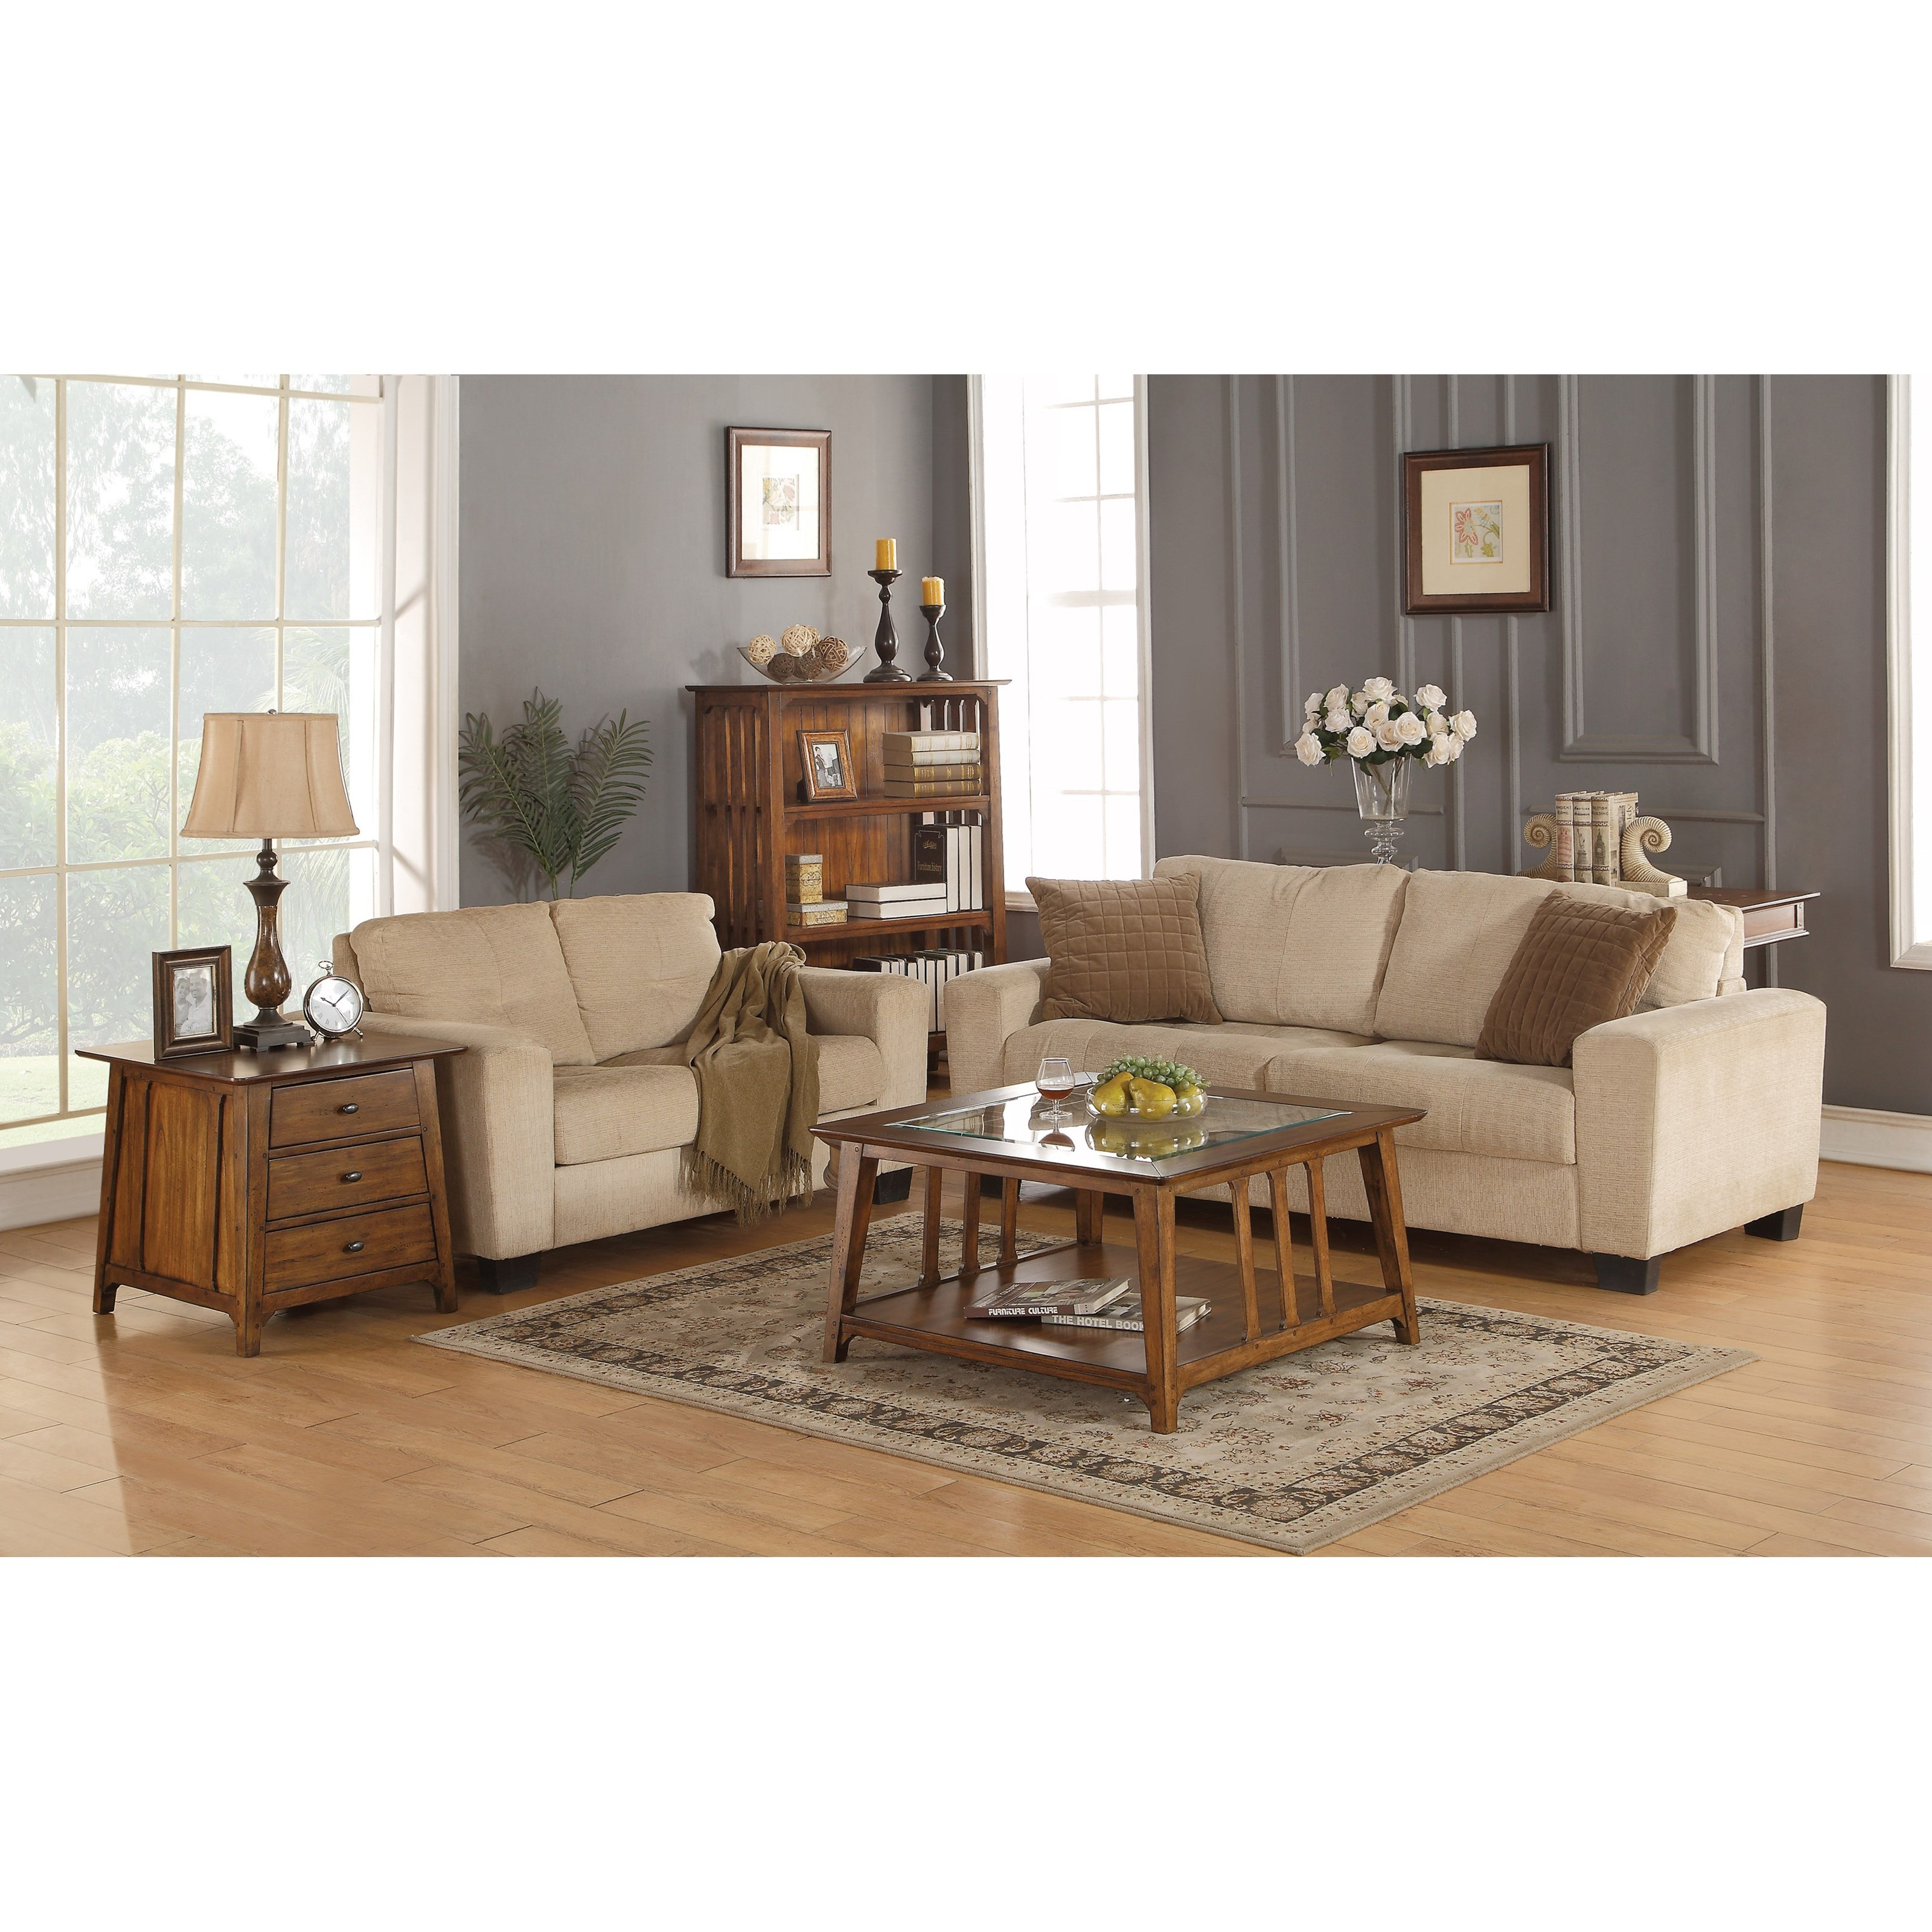 Flexsteel Sofa Mission: Flexsteel Wynwood Collection Sonora Mission End Table With